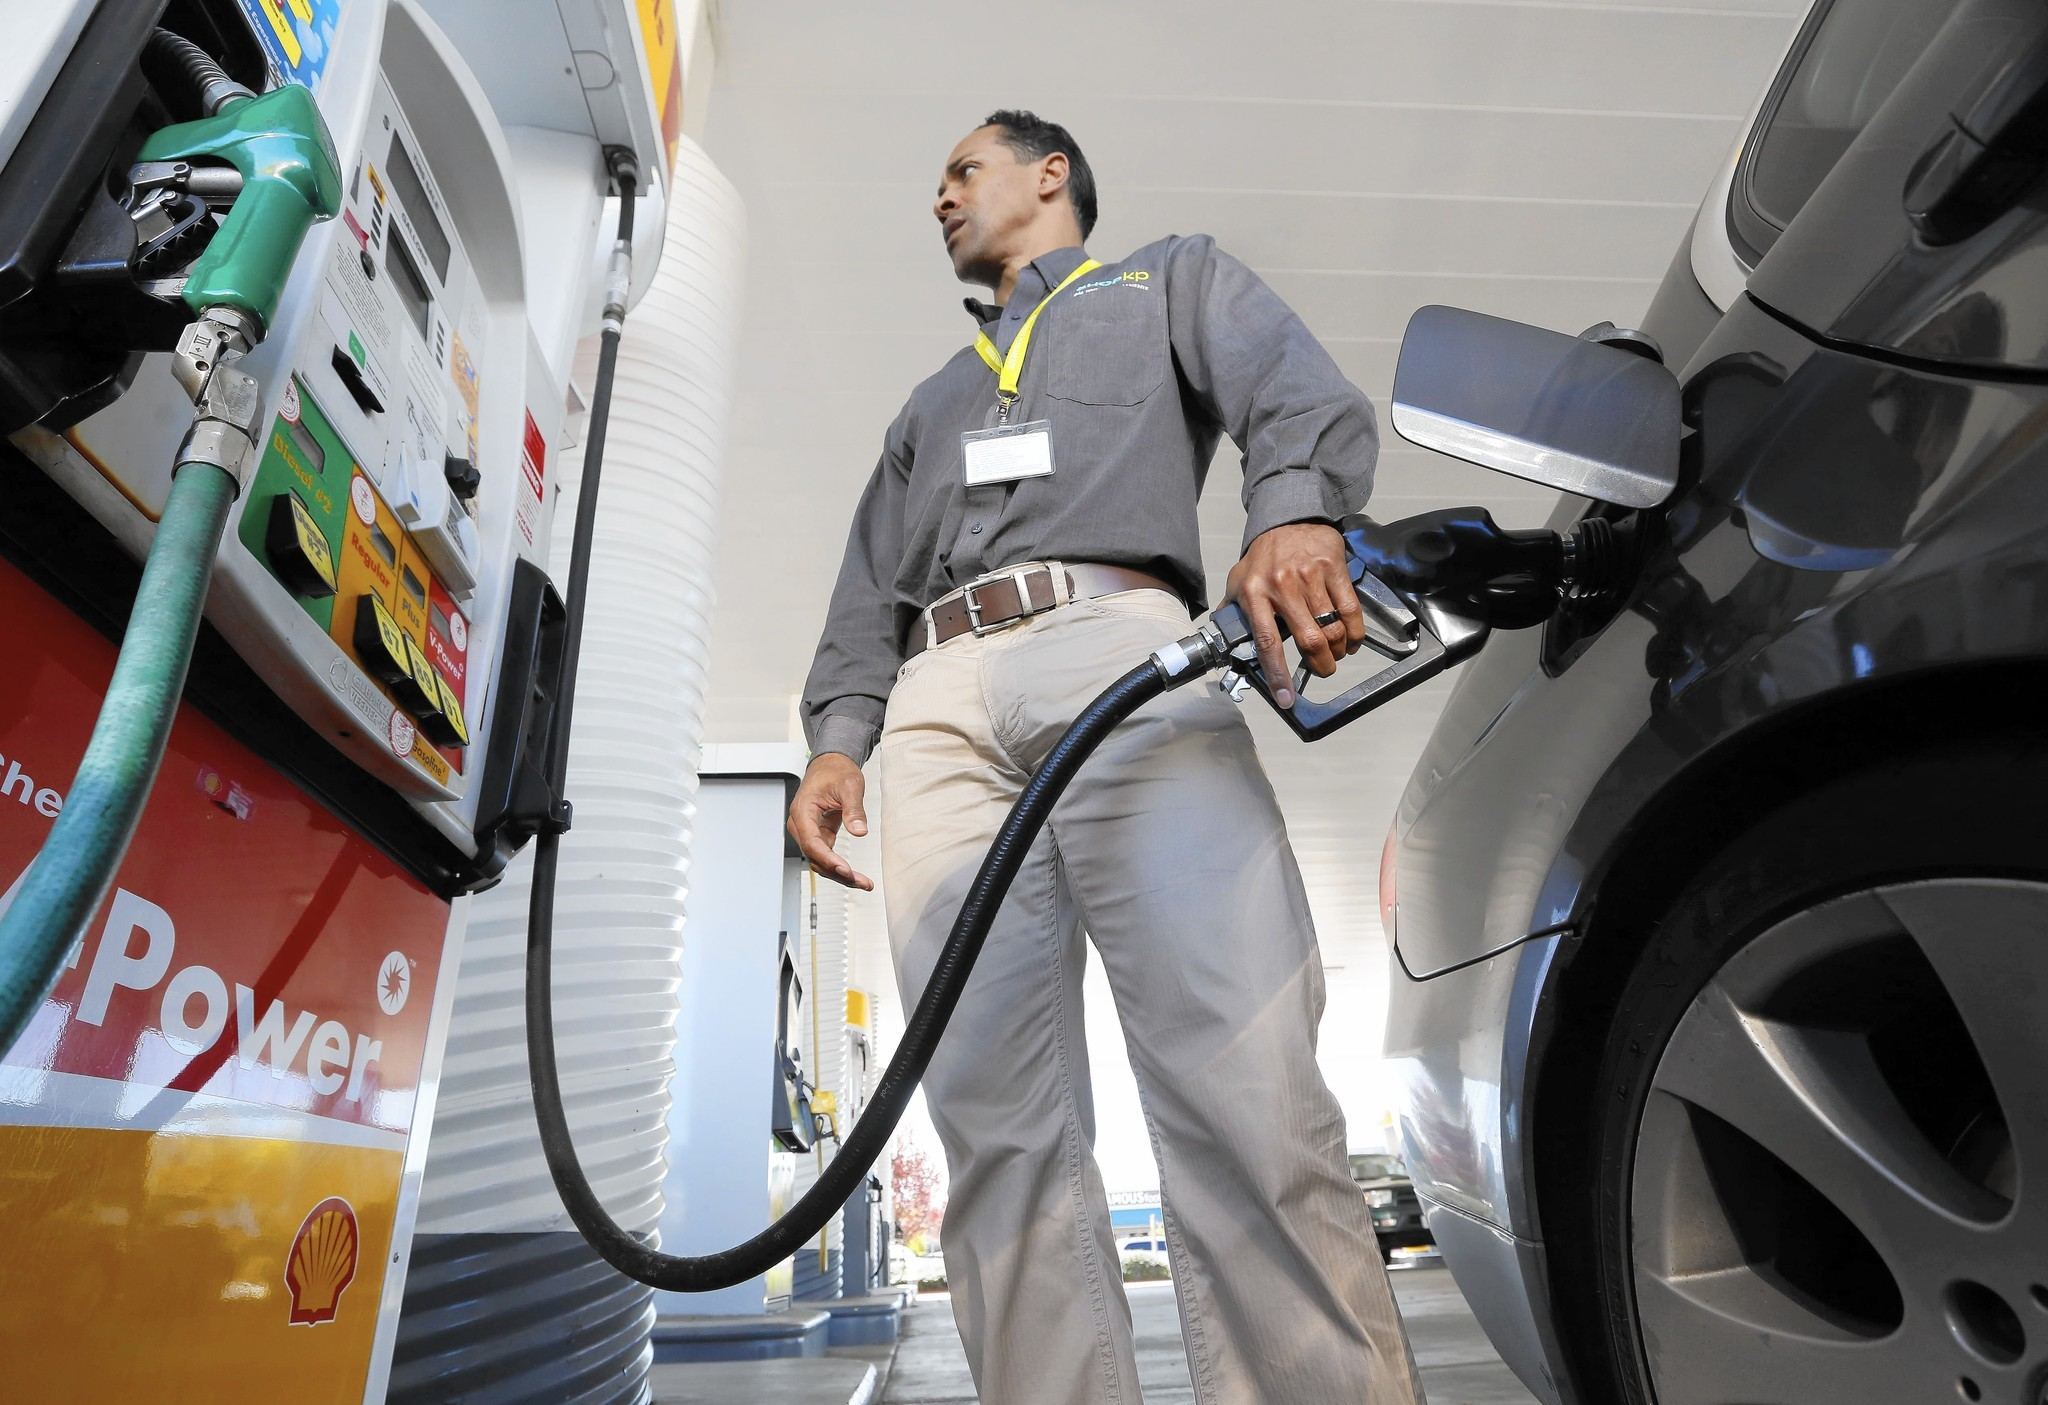 Eric Henry buys gas in Sacramento in March 2014. (Rich Pedroncelli / Associated Press)